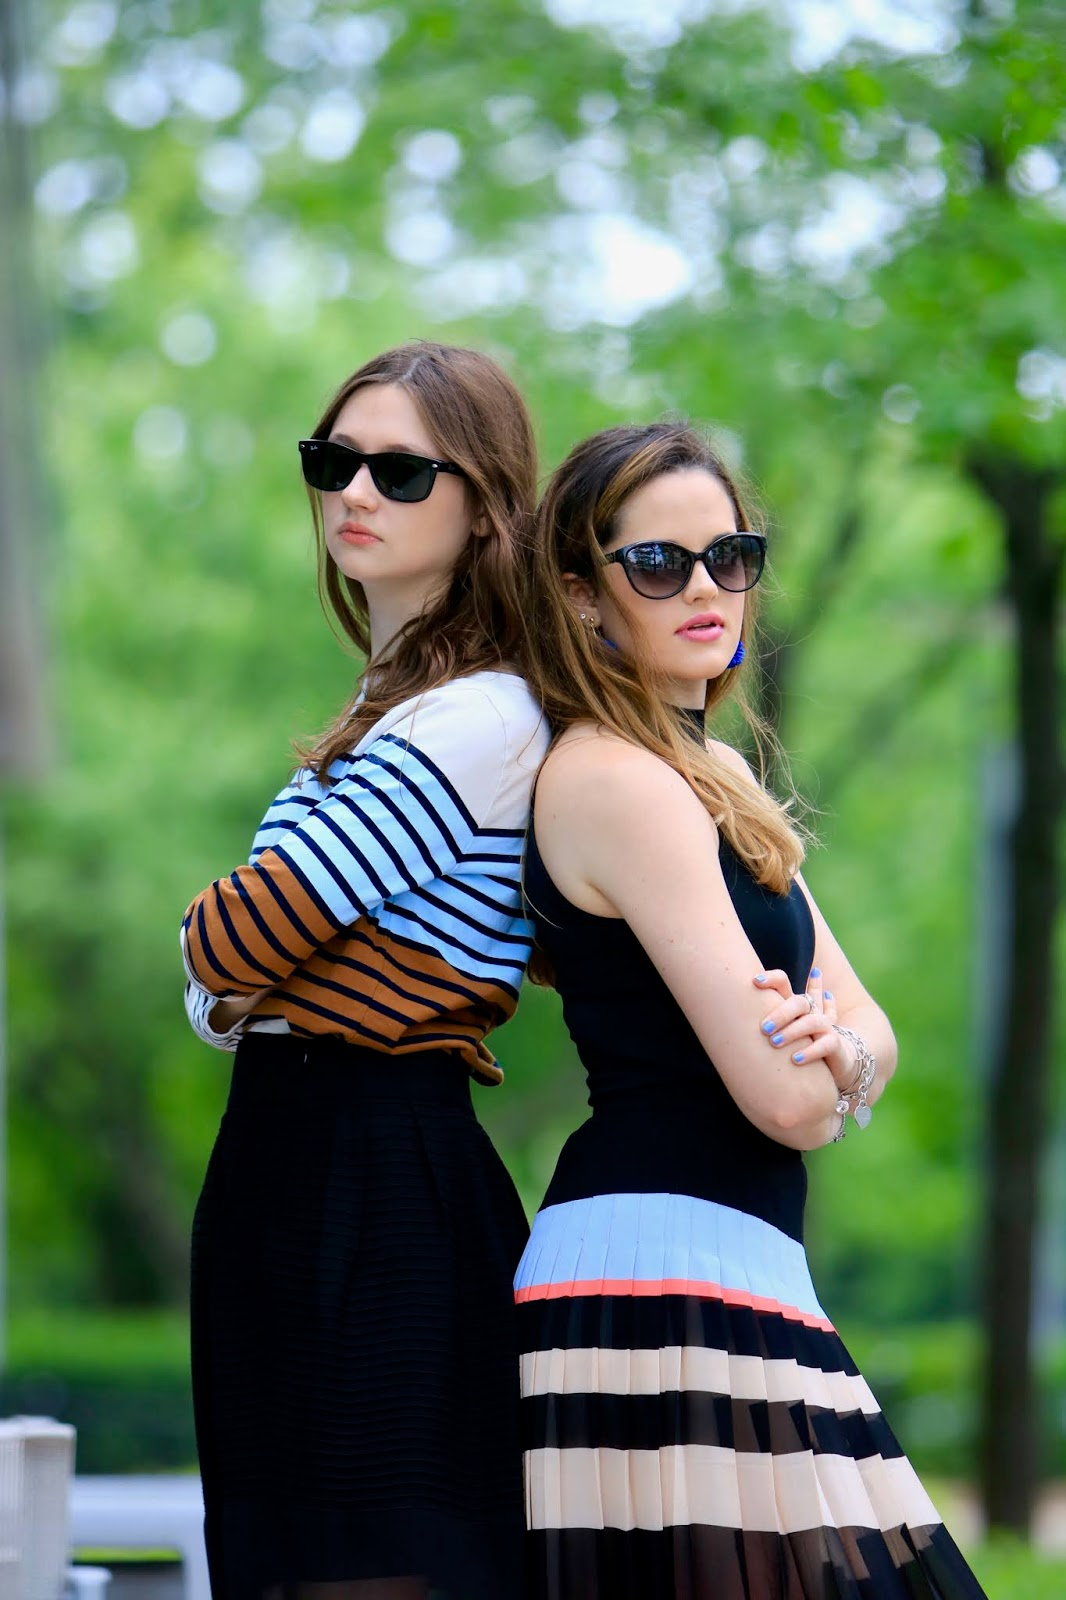 Nyc fashion blogger Kathleen Harper with her sister Sarah Harper